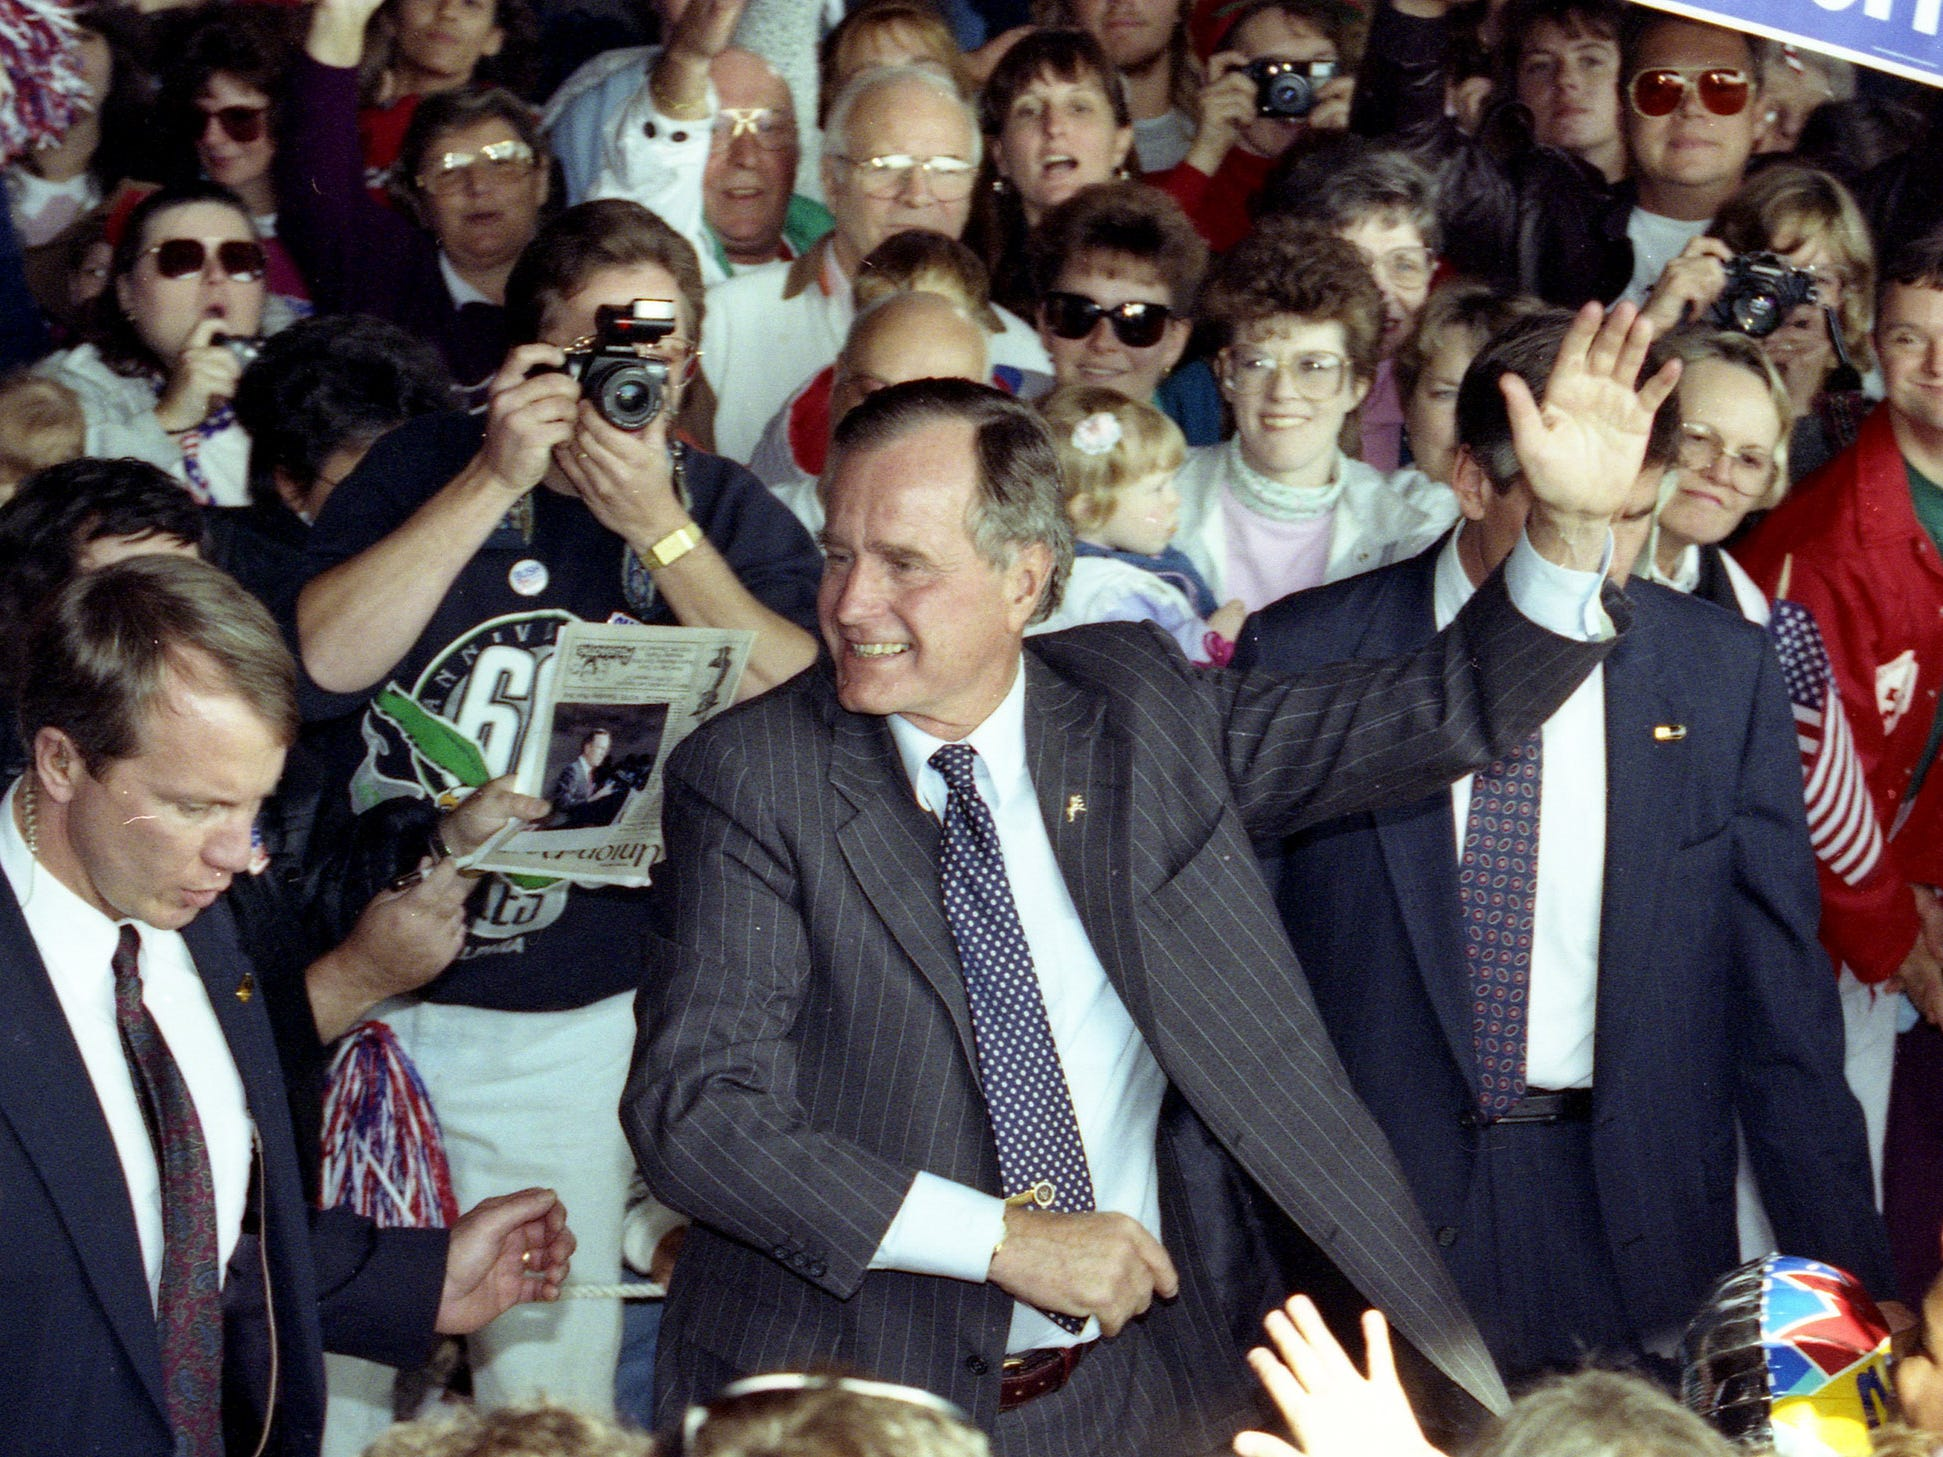 President George HW Bush waves during a campaign rally in Washington Township, NJ, on October 22, 1992.